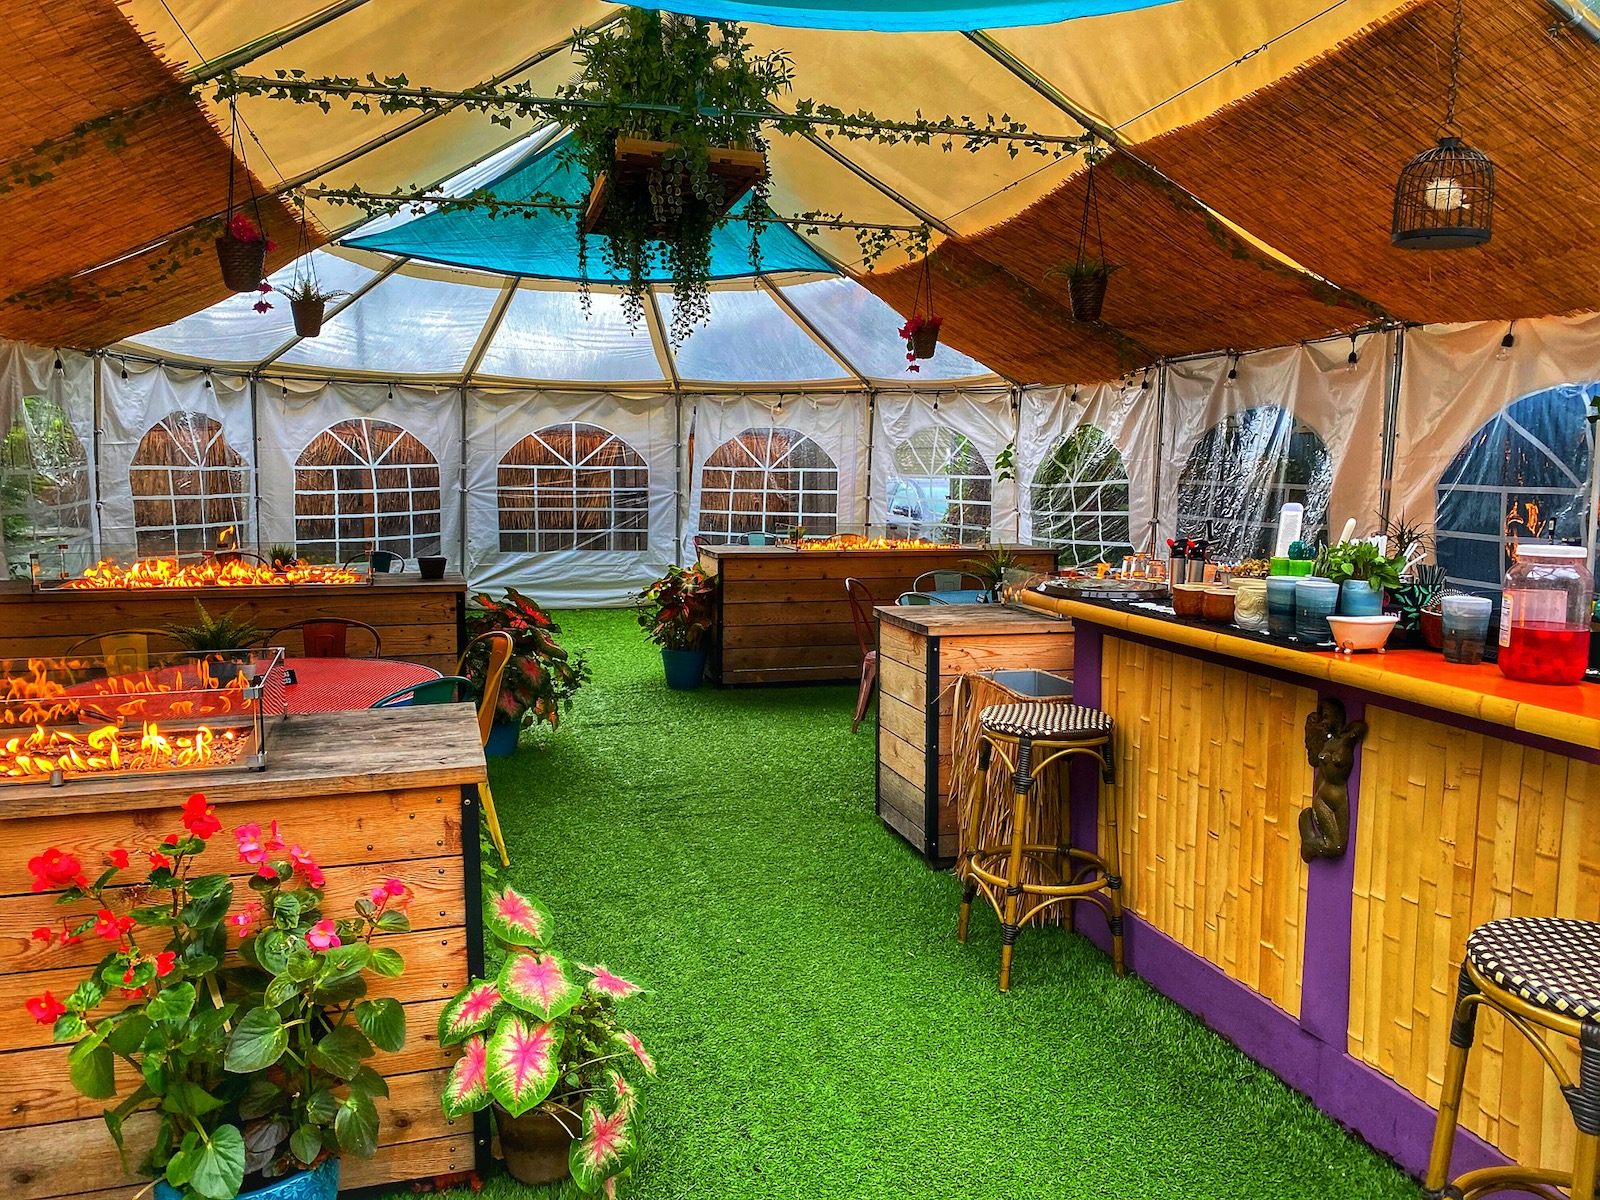 Lost Whale's colorful, enclosed outdoor patio.